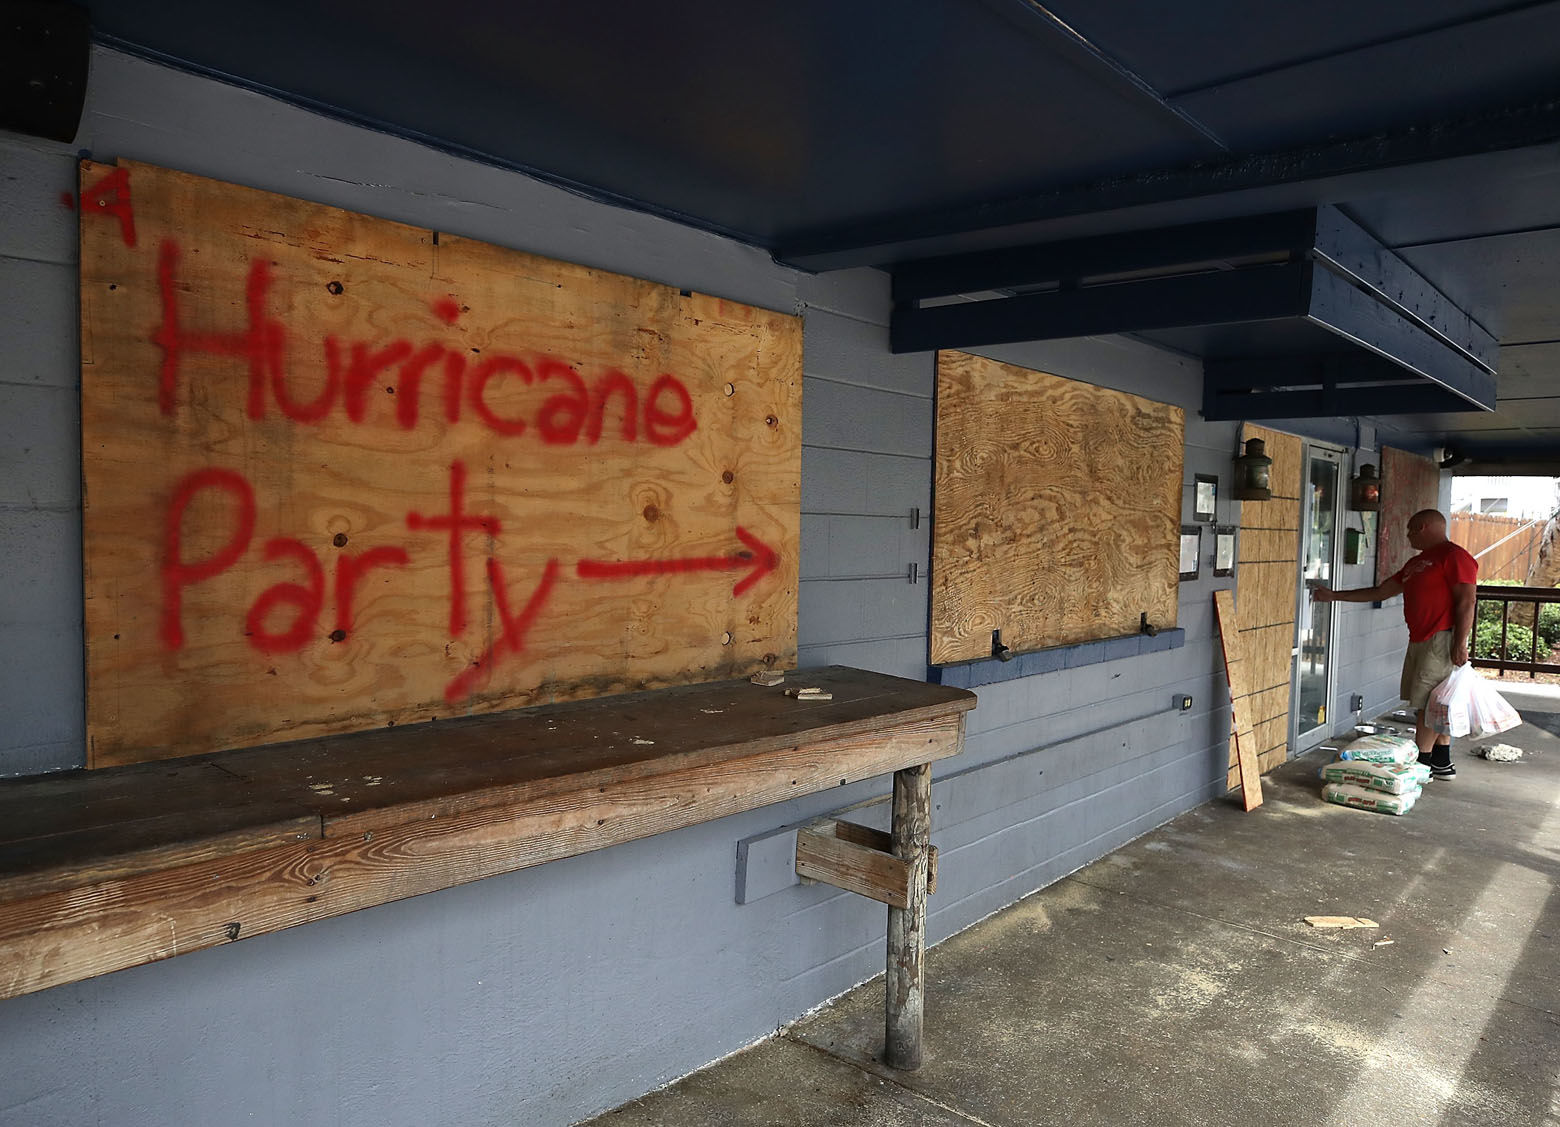 WRIGHTSVILLE BEACH, NC- SEPTEMBER 11: Hurricane Party is written on plywood covering the window of the Lager Heads Tavern as they prepare for the arrival of Hurricane Florence on September 11, 2018 in Wrightsville Beach, United States. Hurricane Florence is expected on Friday possibly as a category 4 storm along the Virginia, North Carolina and South Carolina coastline.  (Photo by Mark Wilson/Getty Images)